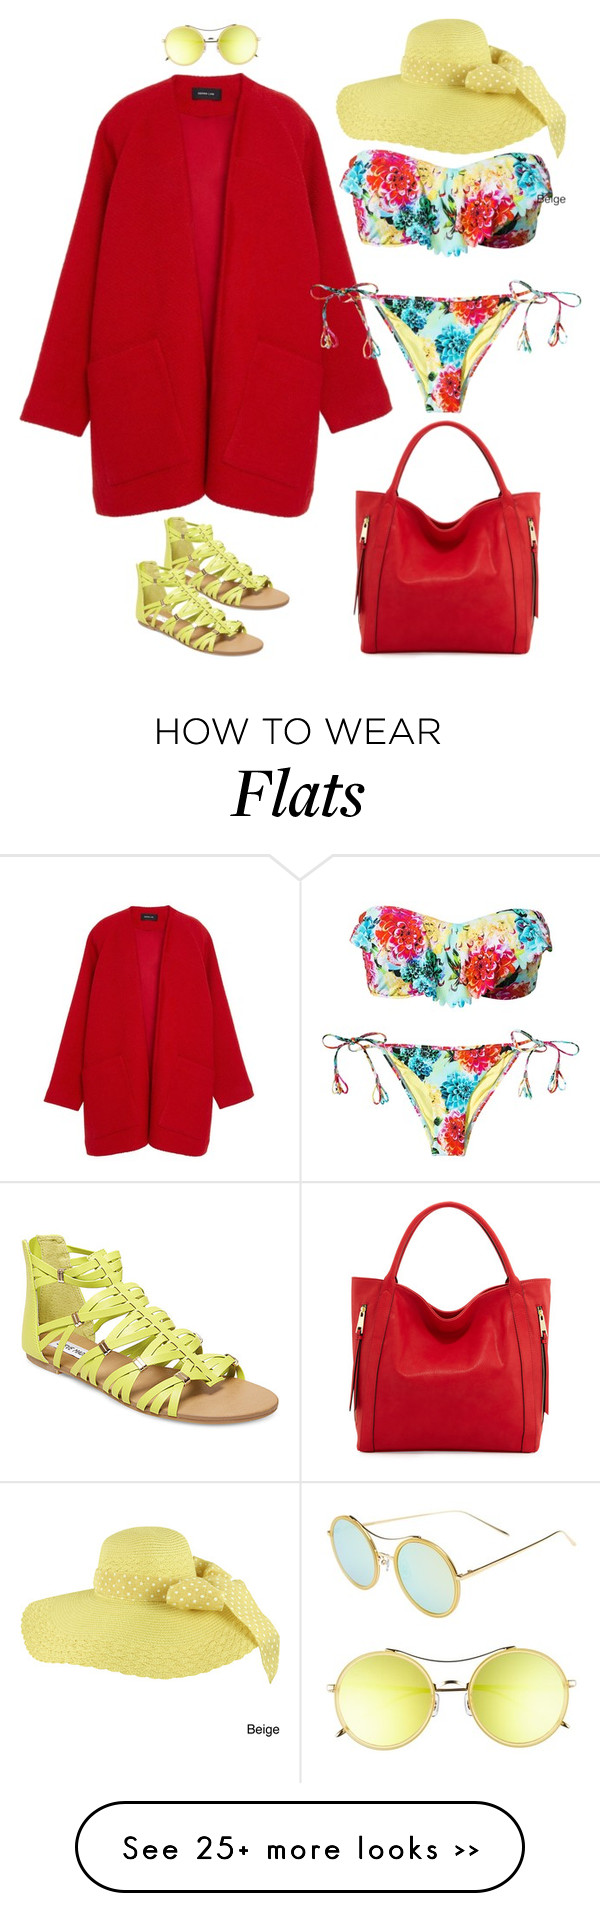 """""""Beach Chic"""" by miki006 on Polyvore featuring Derek Lam, Seafolly, Faddism, Steve Madden and Gentle Monster"""